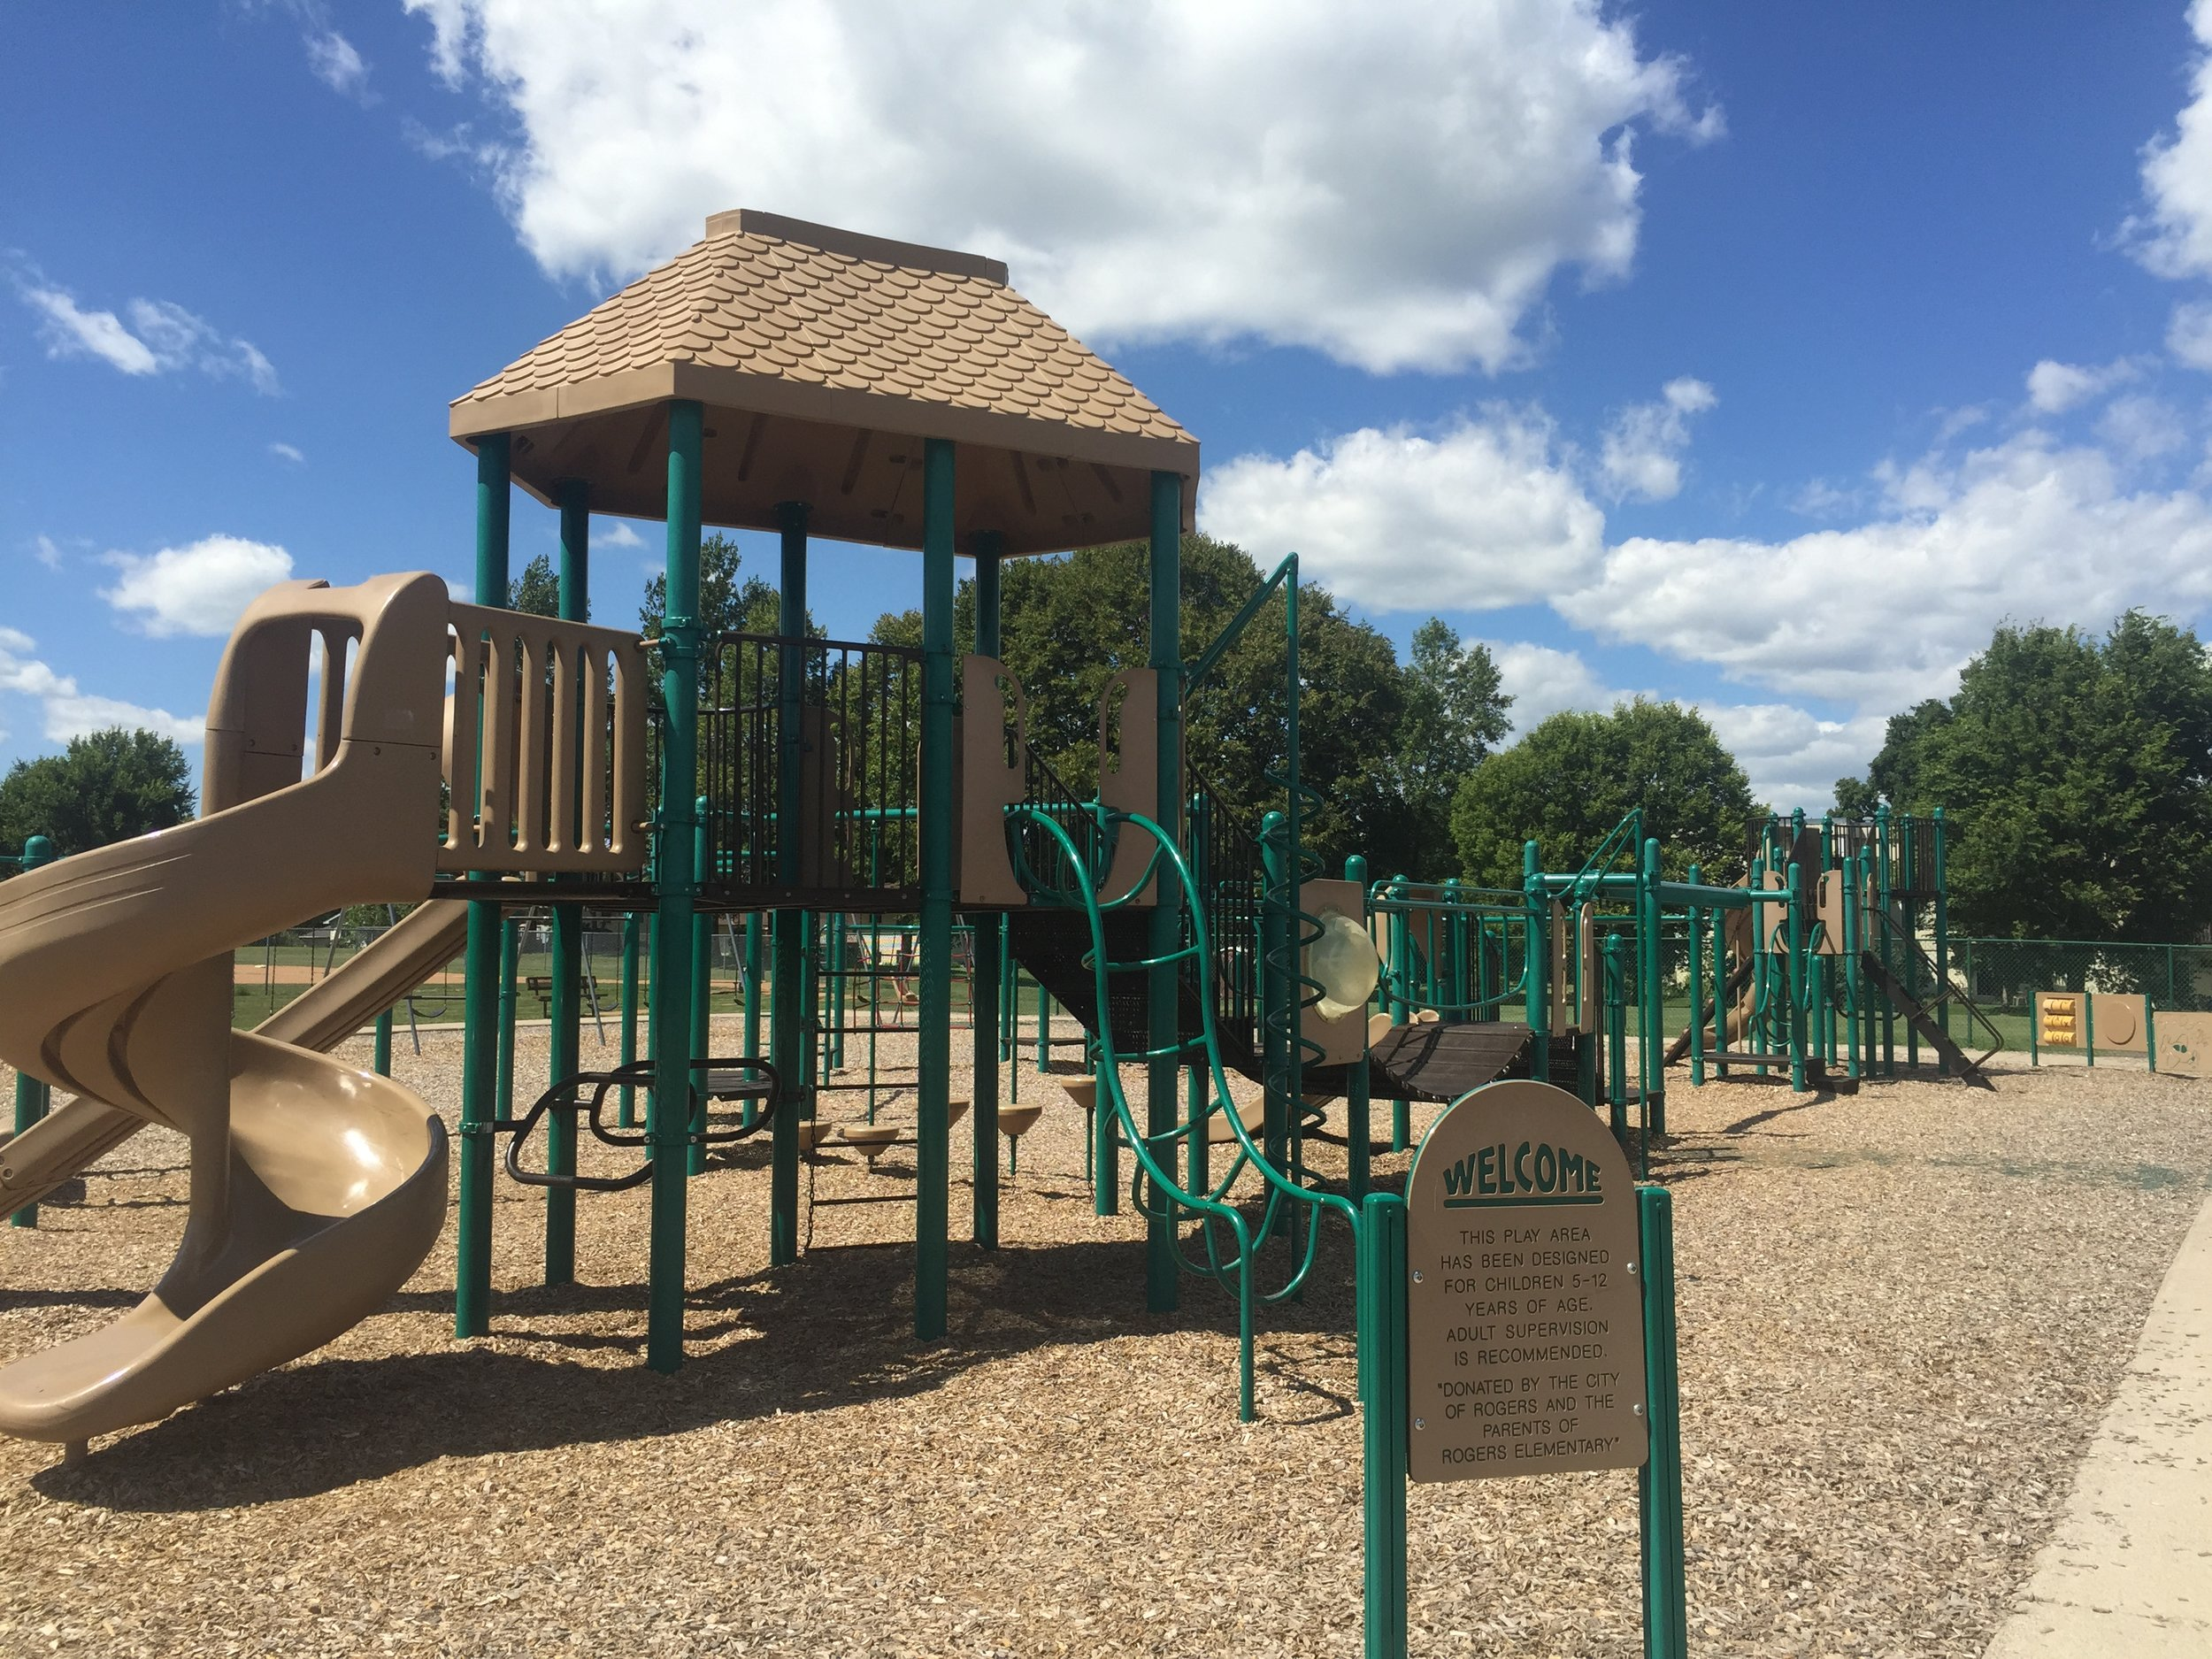 Picture of playground at Rogers Elementary School